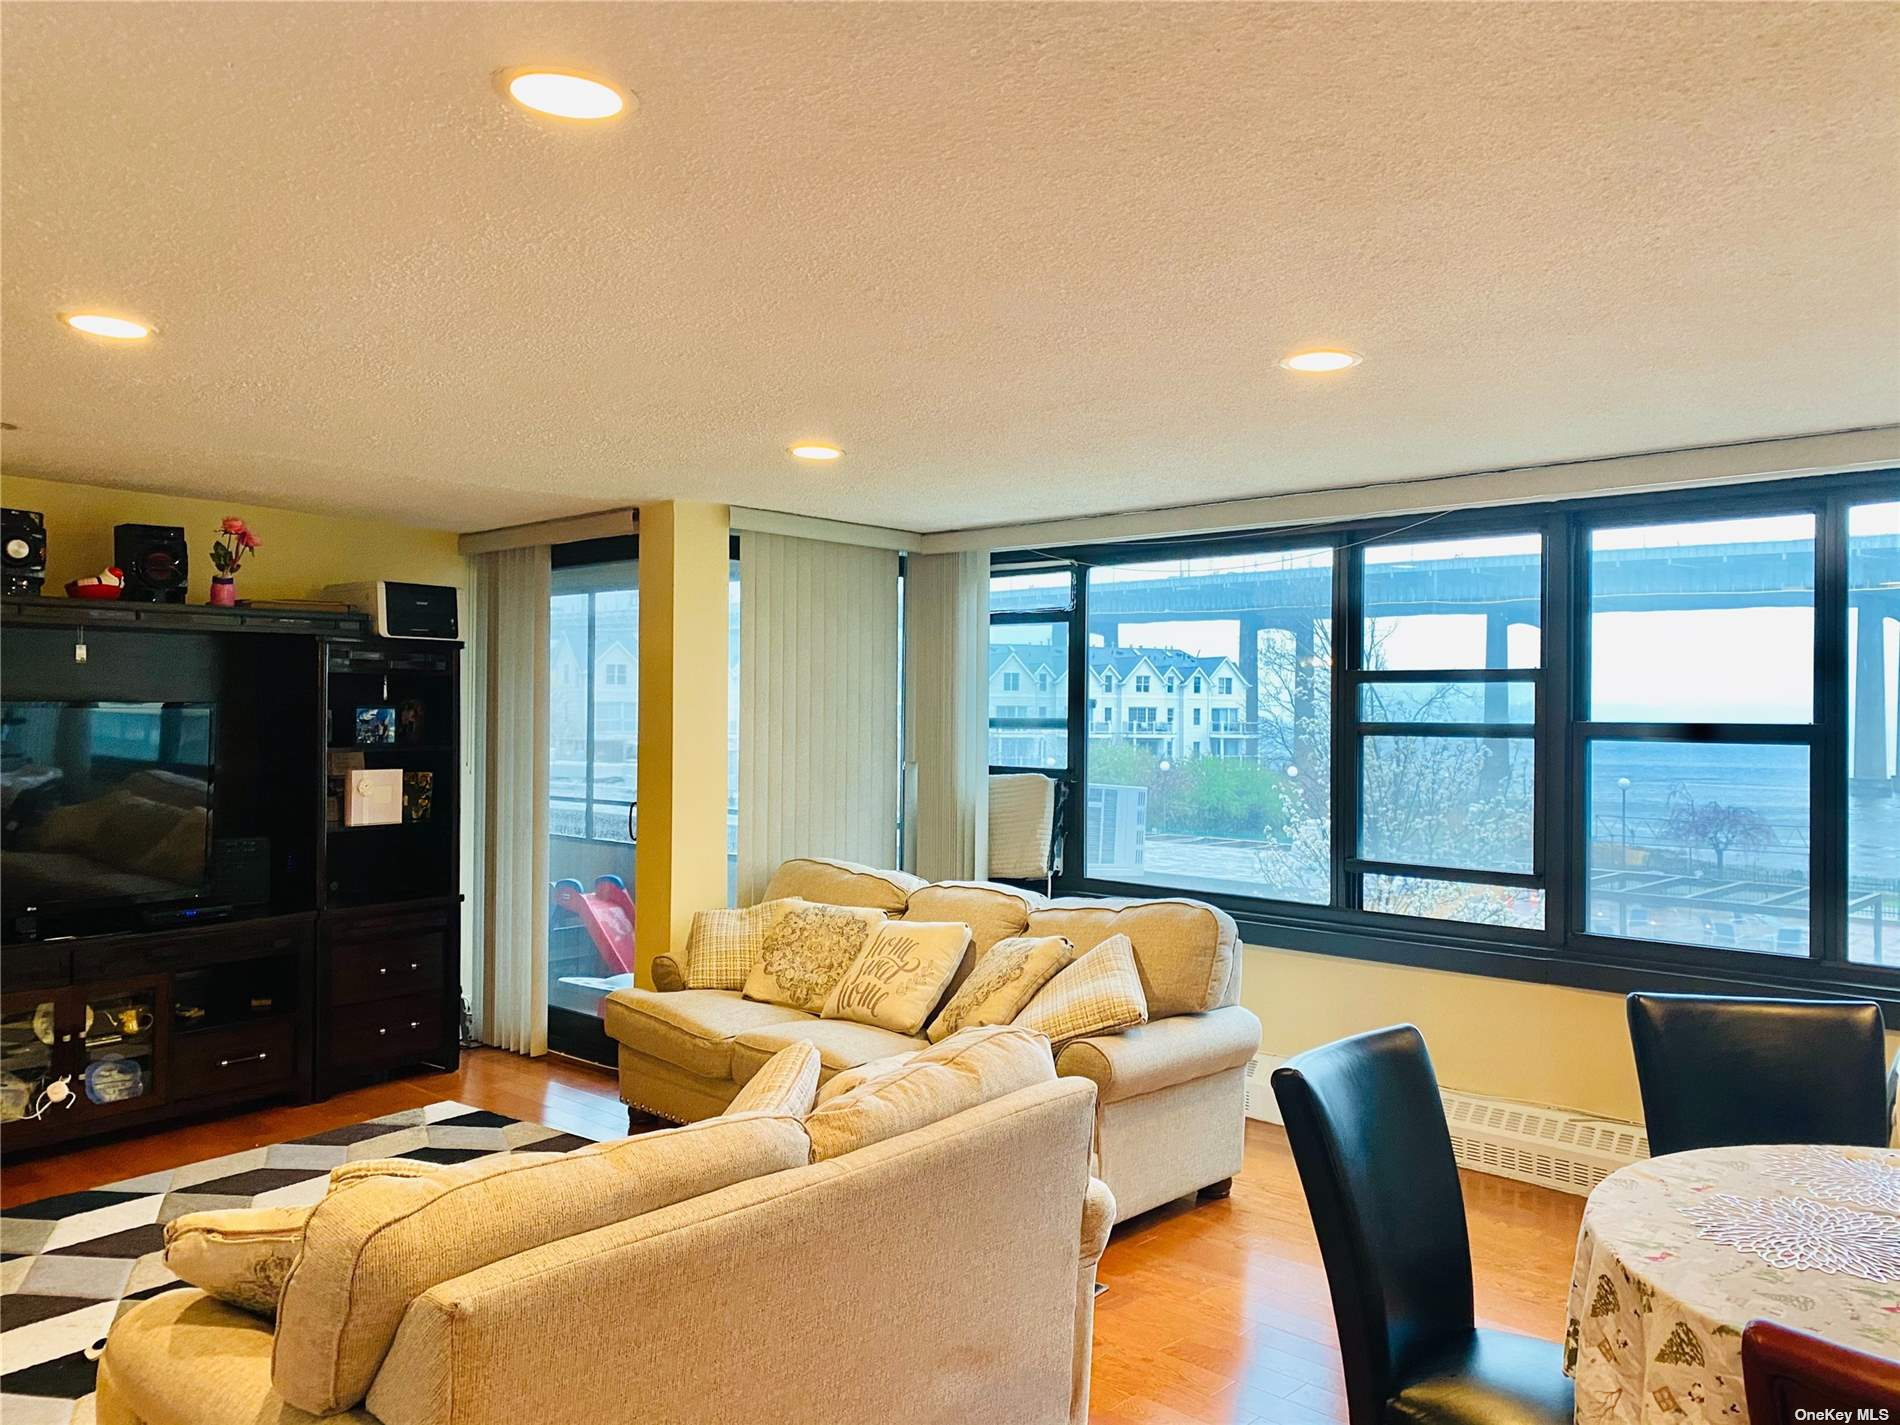 Prime location Waterfront eastern exposure boasting water and bridge views...Renovated Kitchen and bath with laminate flooring in living room and dining room/updated bath .recessed lighting .prime parking space available for transfer